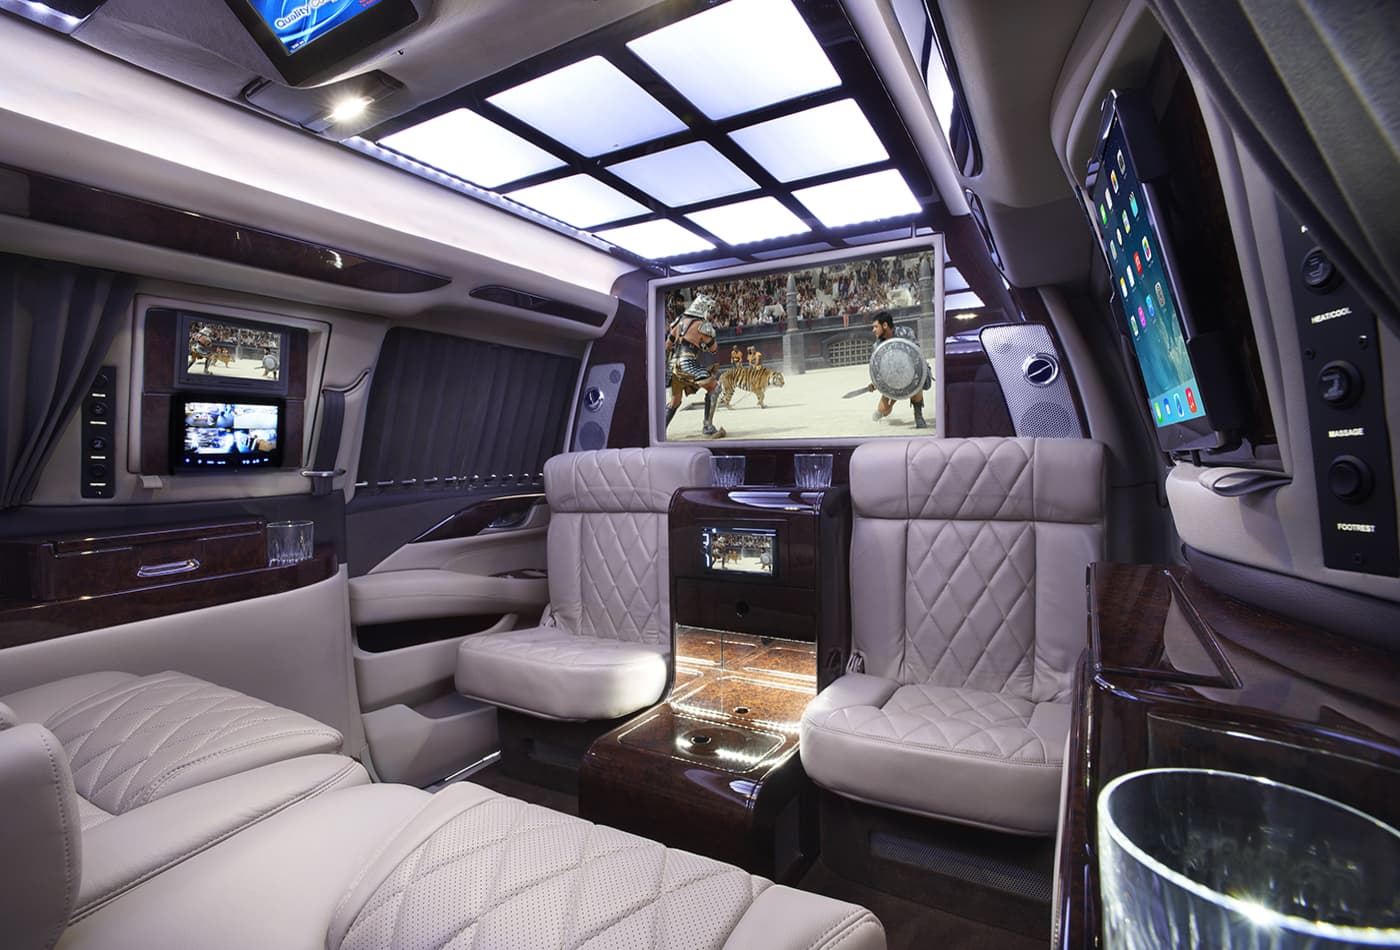 Photos: $350,000 bulletproof Cadillac Escalade